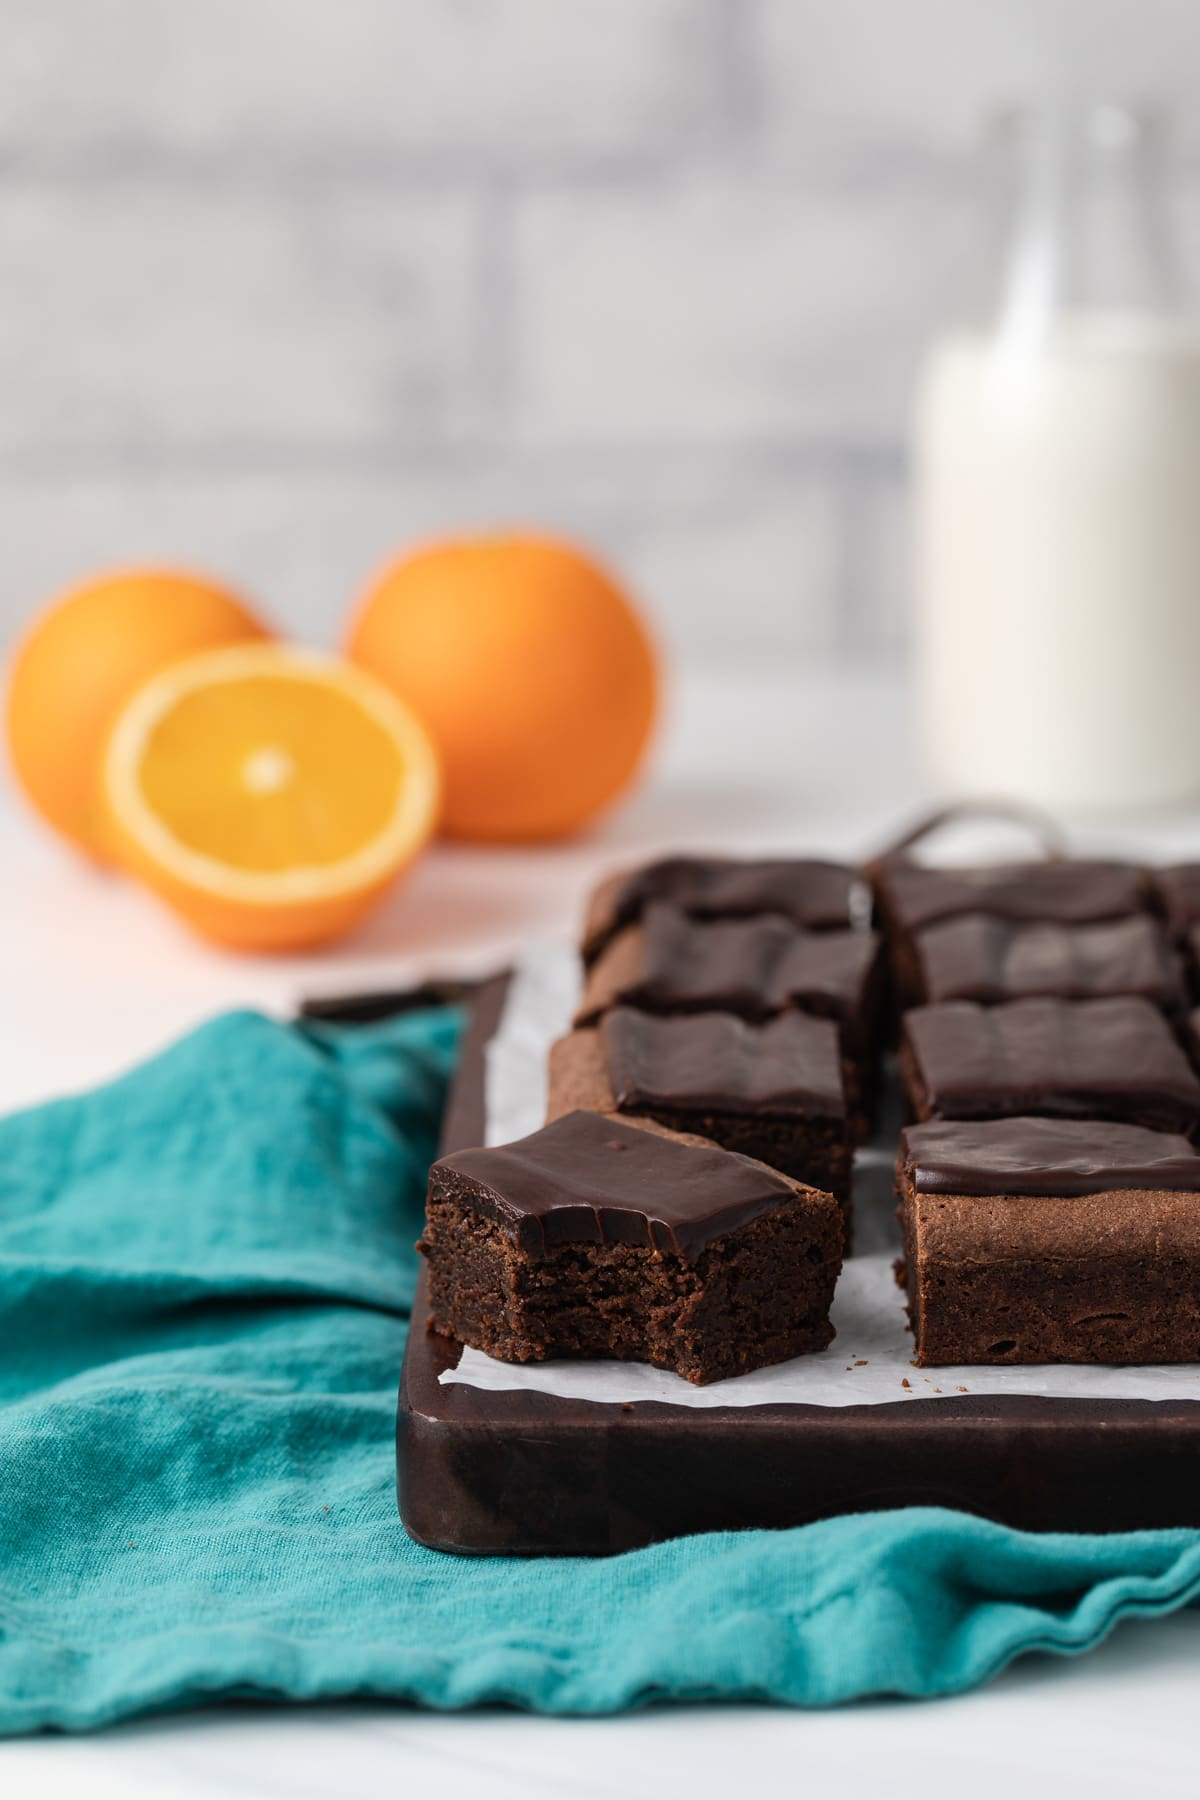 chocolate orange brownies with a bite taken out of one